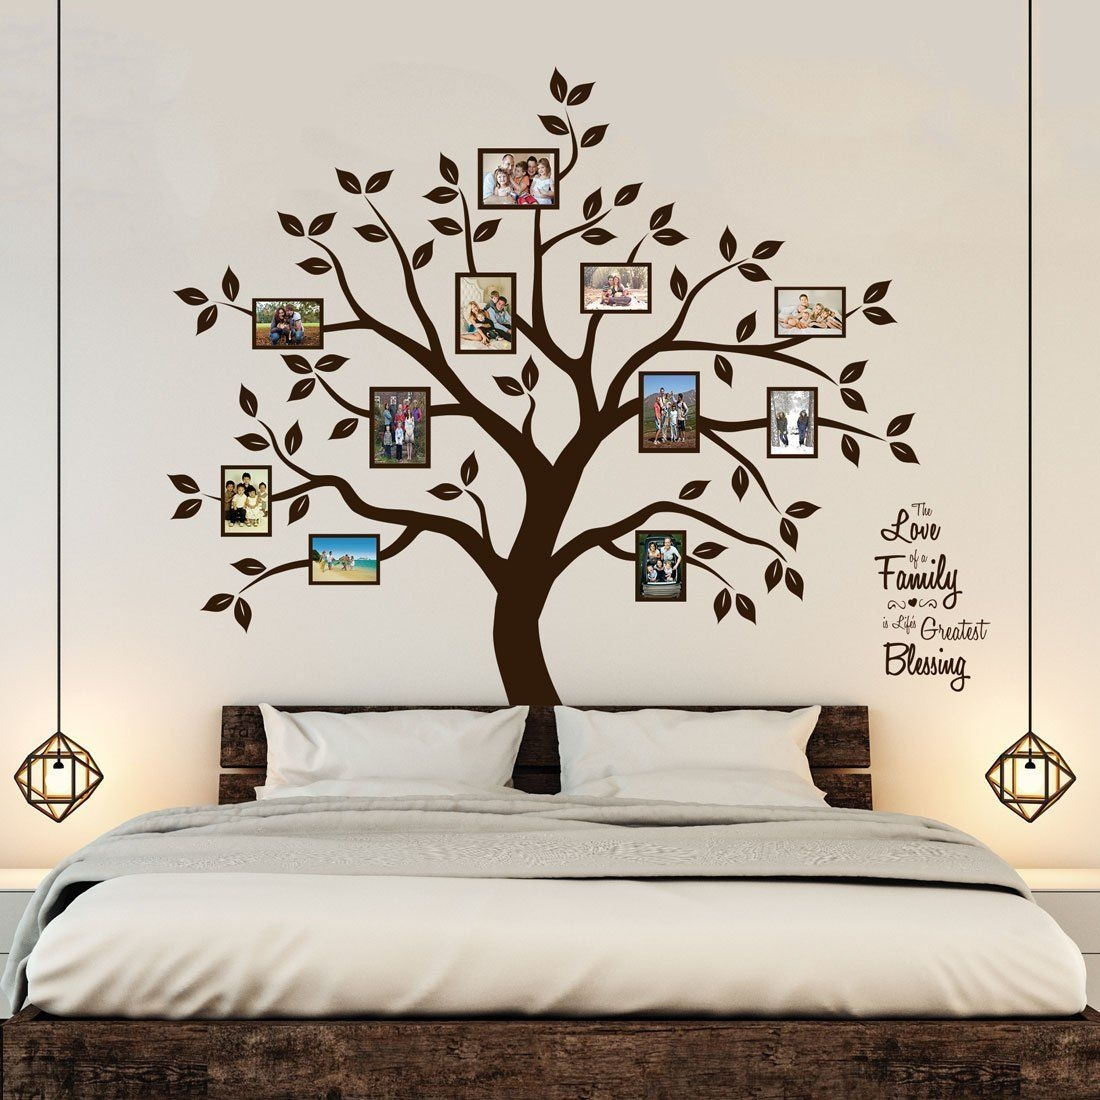 Paint a Family Photo Tree On the Wall for Boys Bedroom Painting Ideas